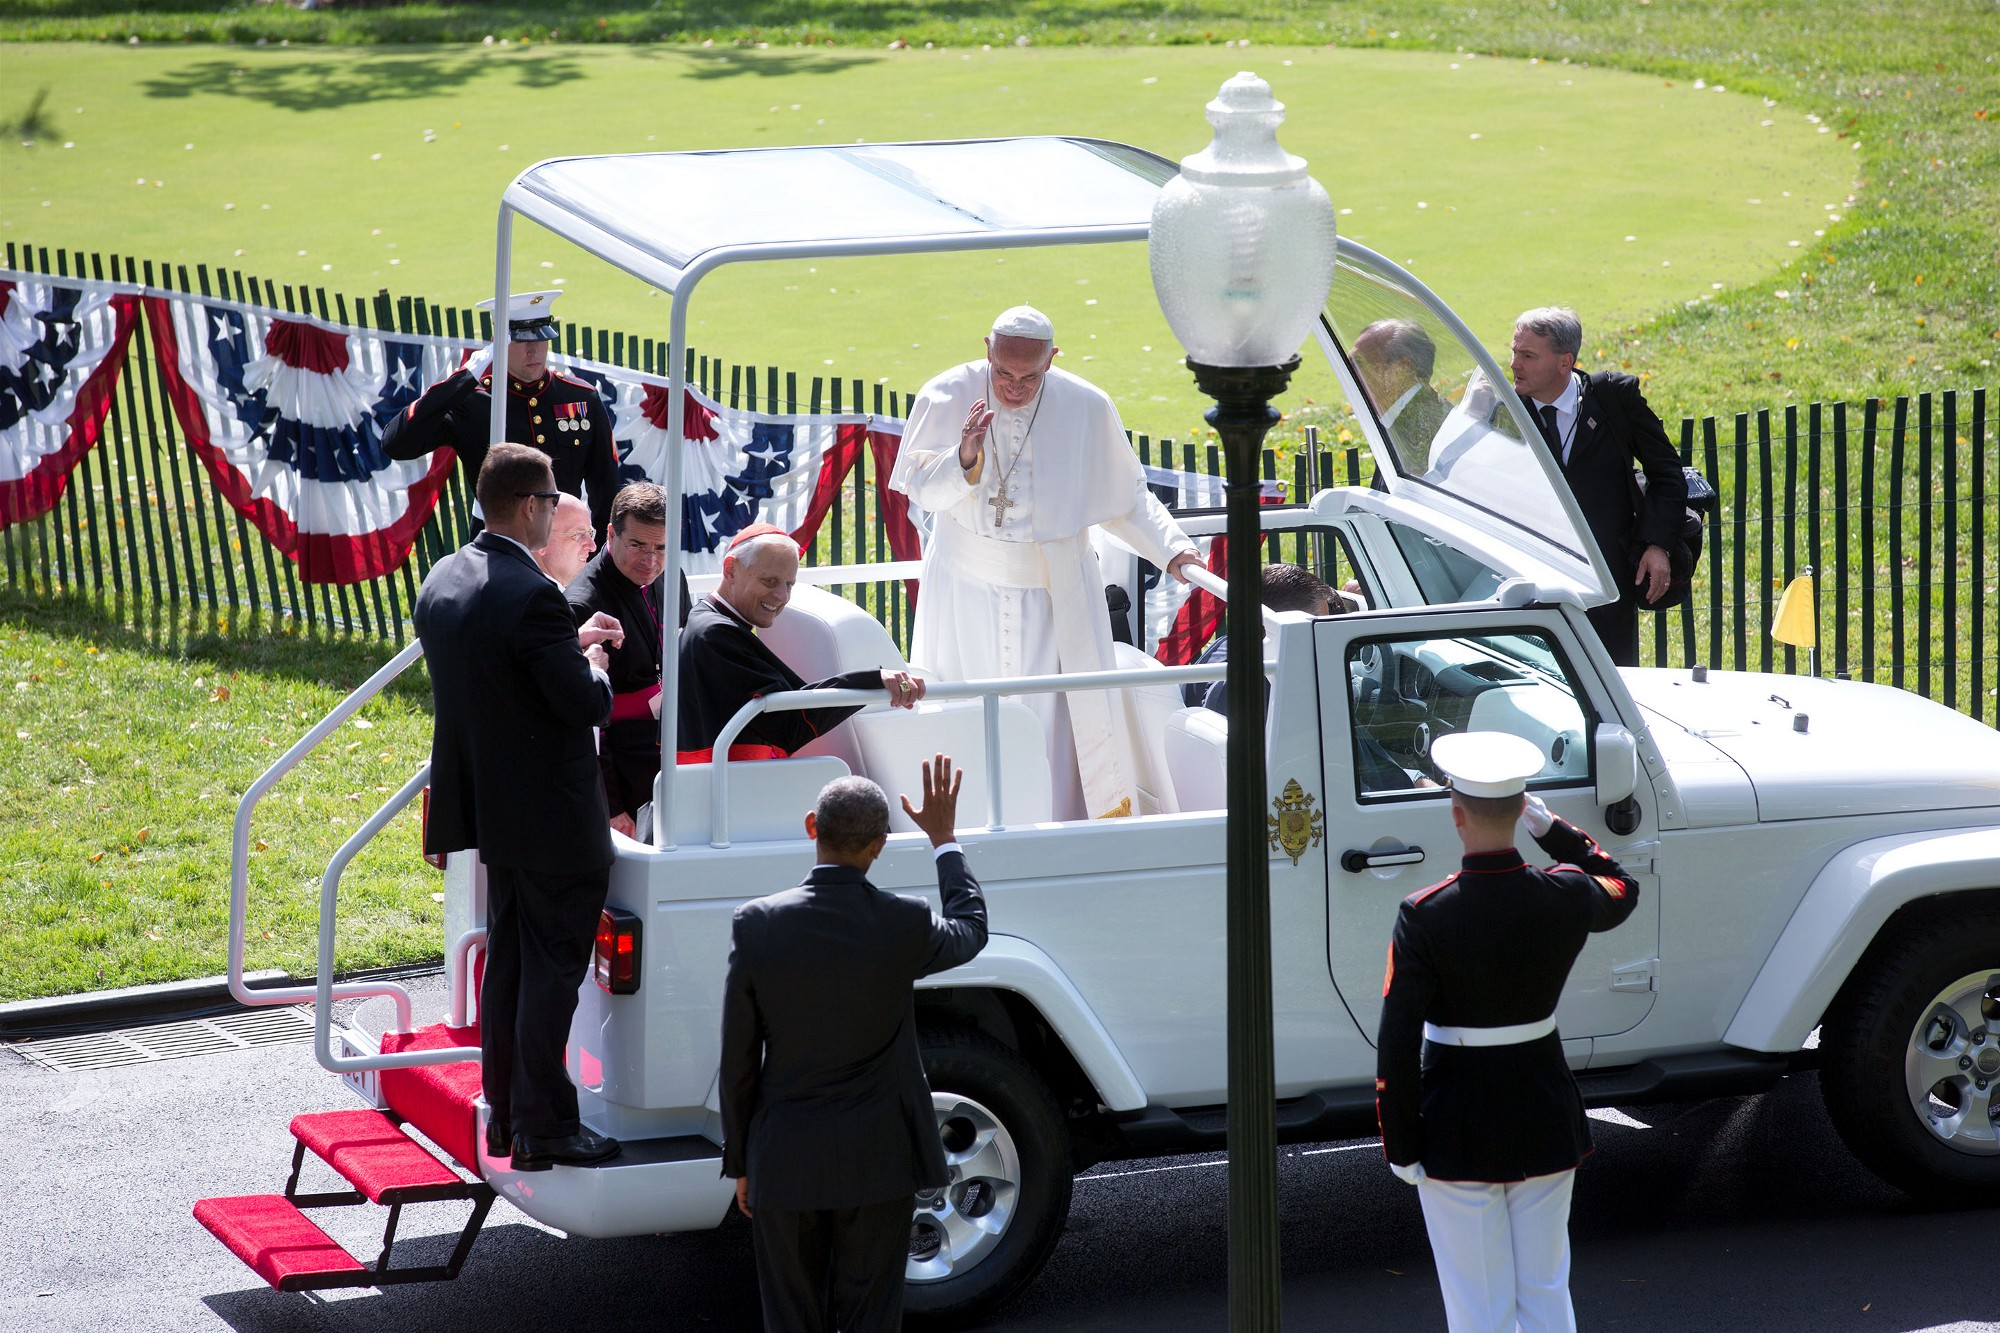 The President bids the Pope farewell. (Official White House Photo by Lawrence Jackson)